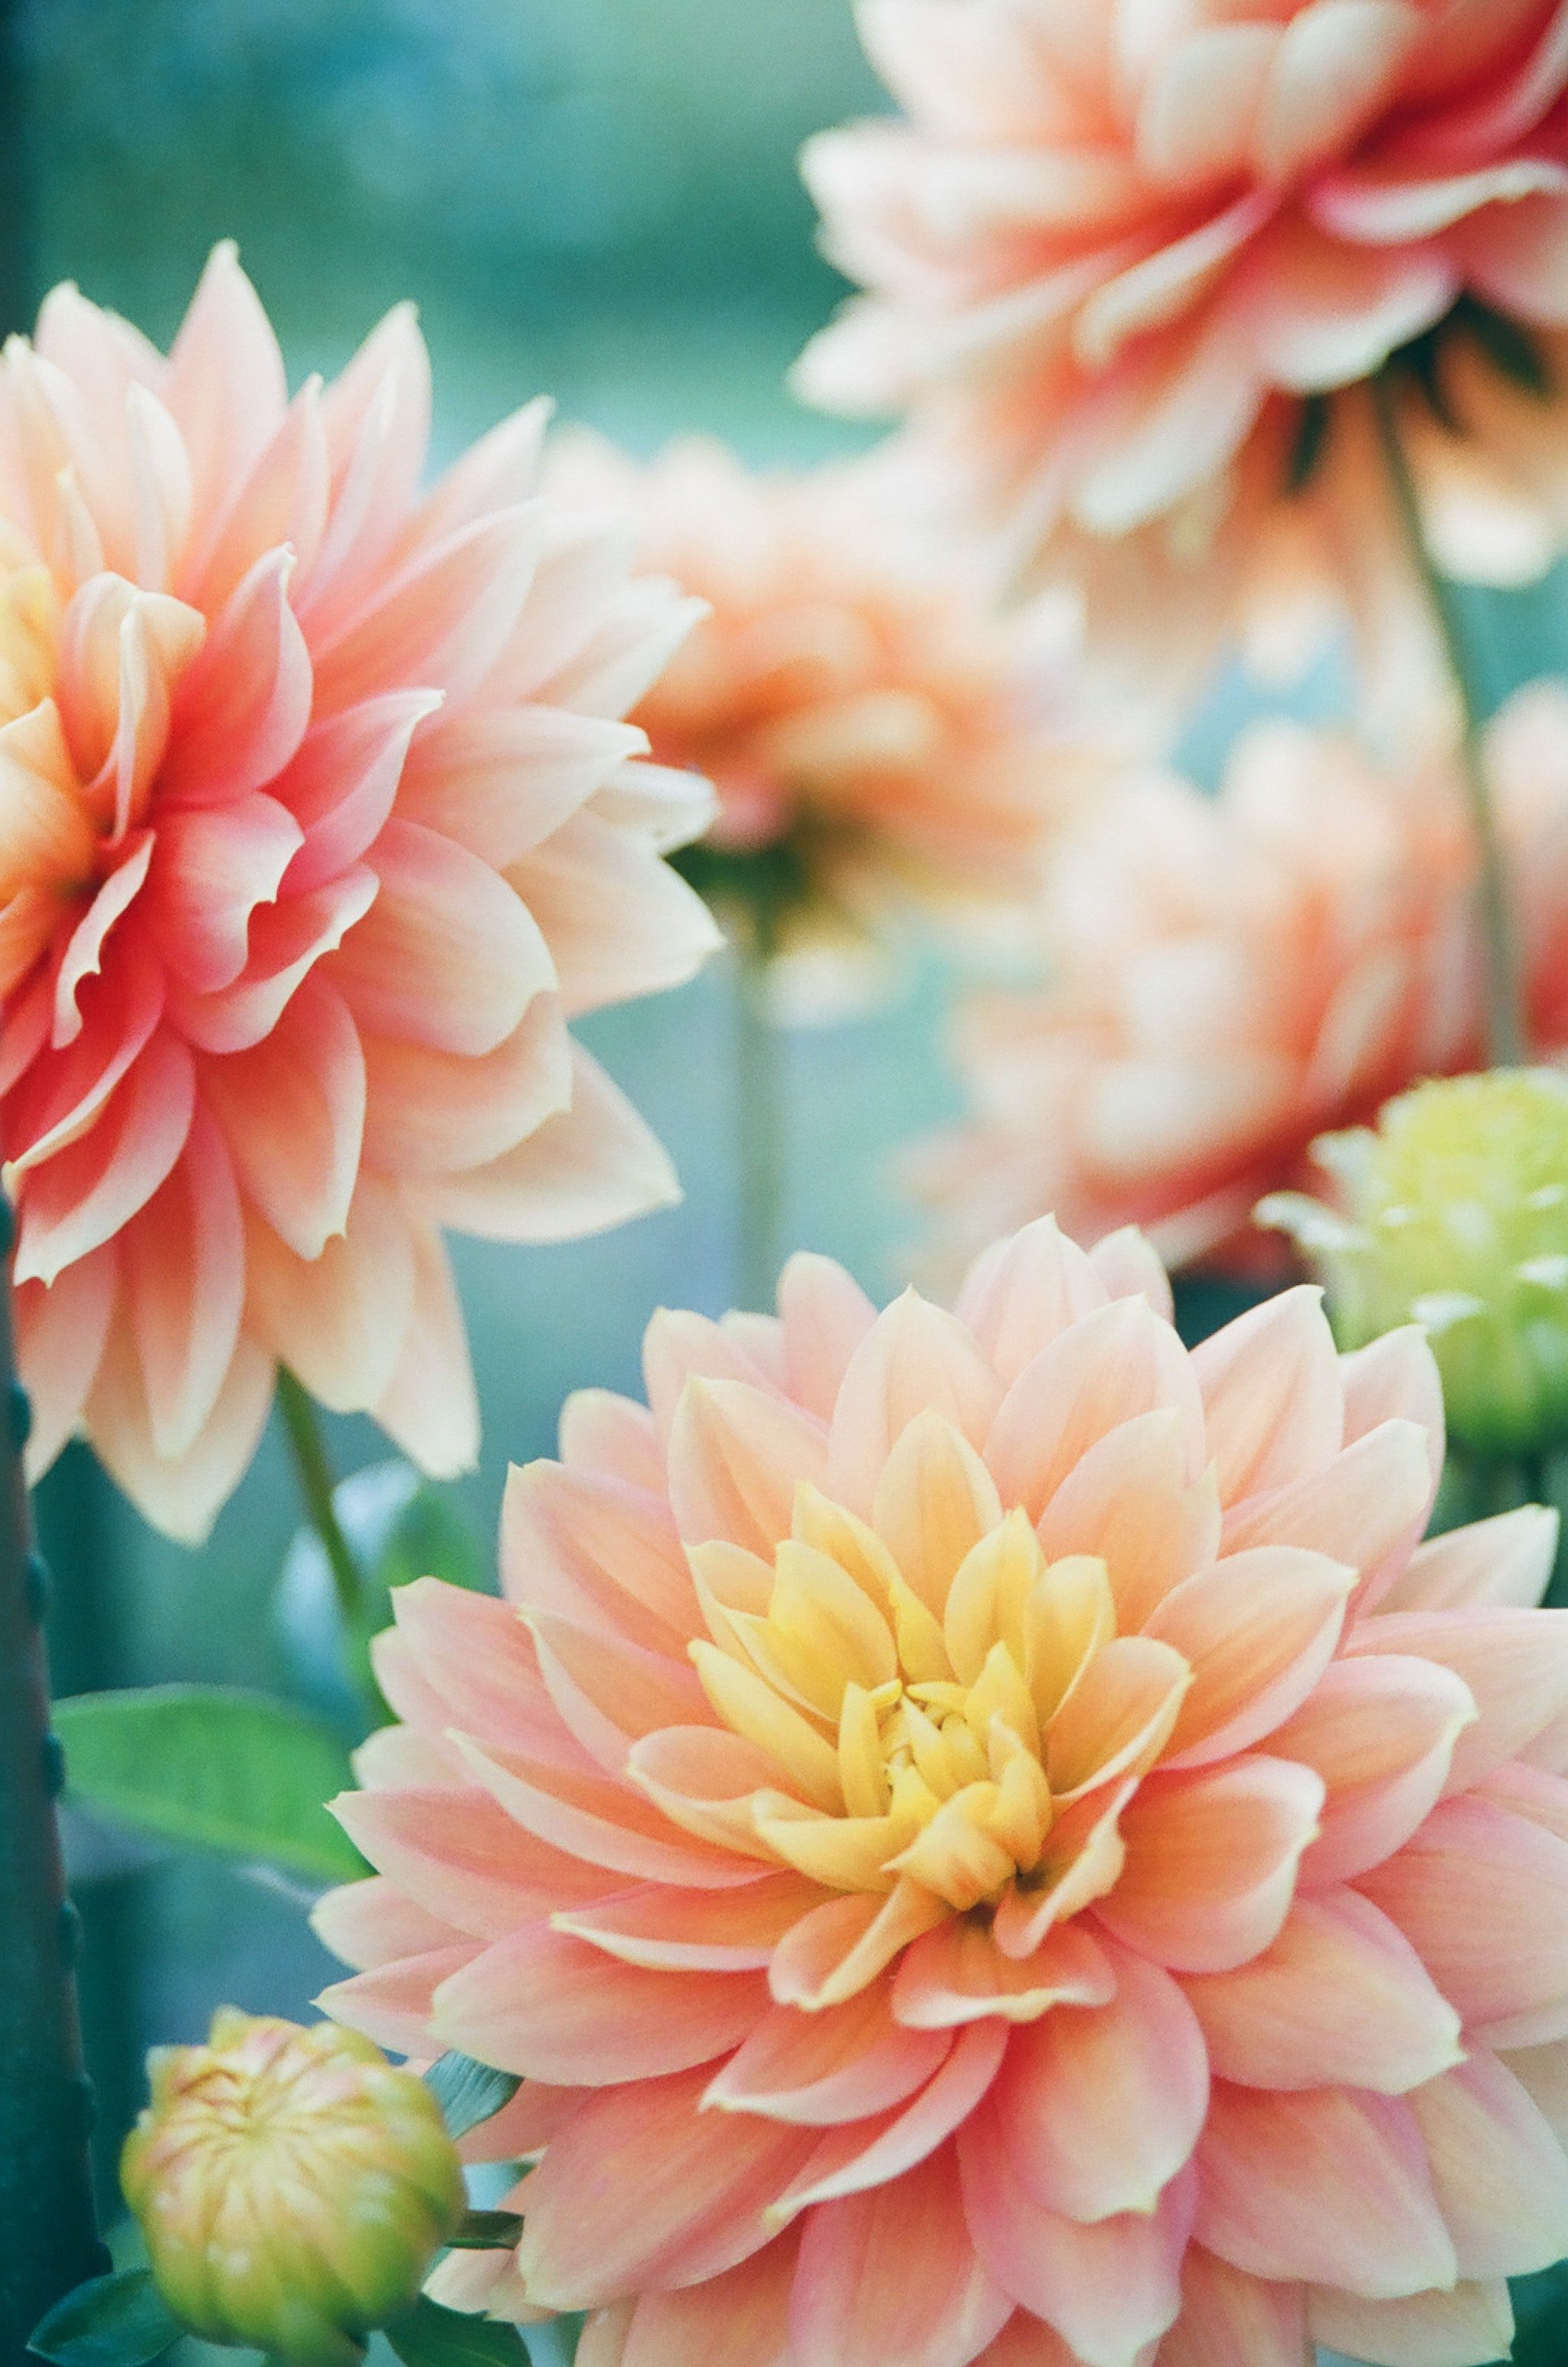 Pink Dahlia Flowers In Focus Photography Flower Pictures Flower Wallpaper Flowers